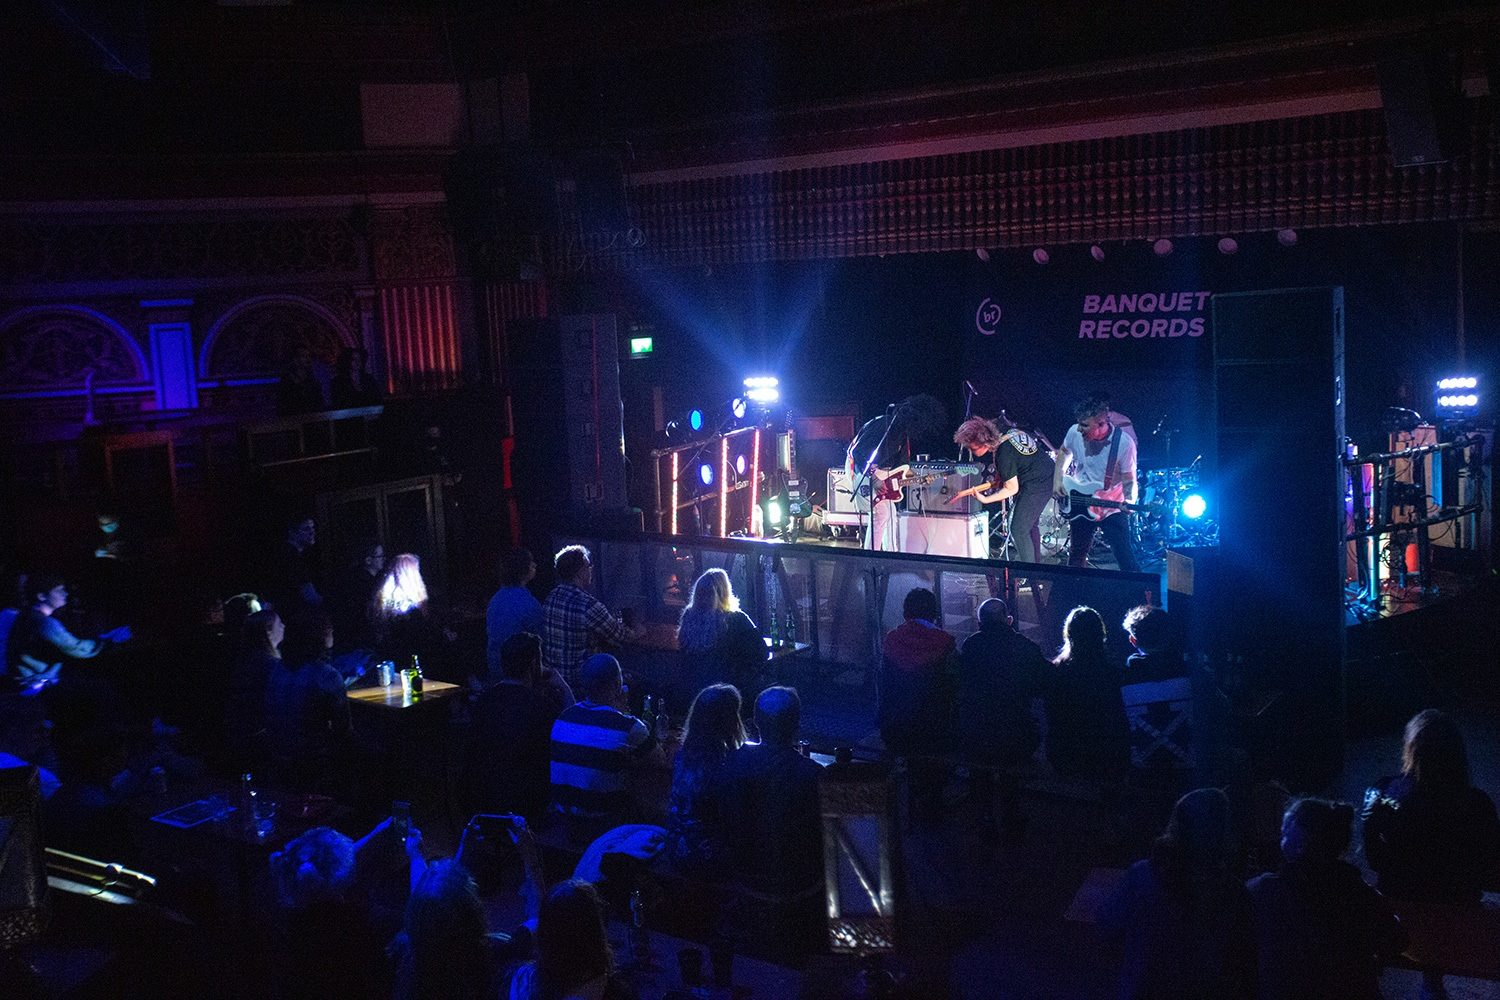 What's next for live music in the UK?